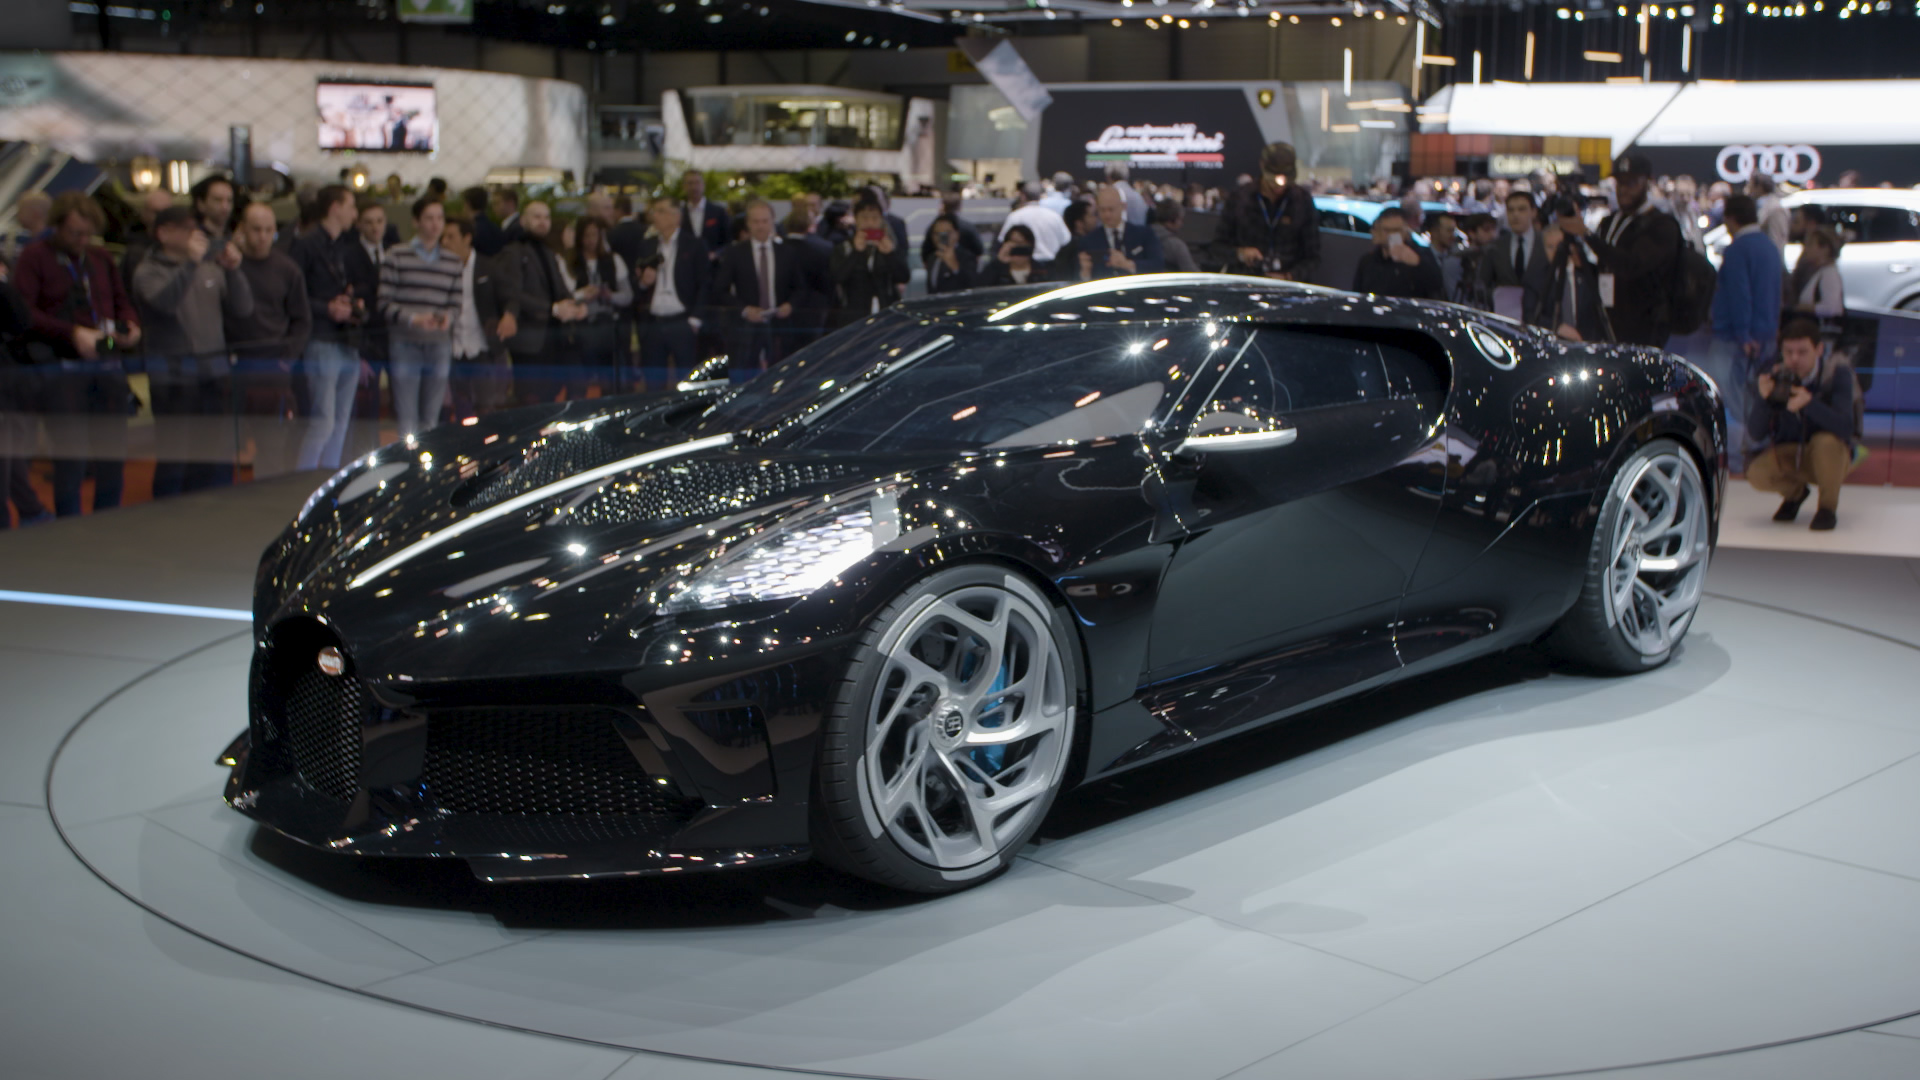 This $19 million Bugatti is the most expensive new car ever sold ...